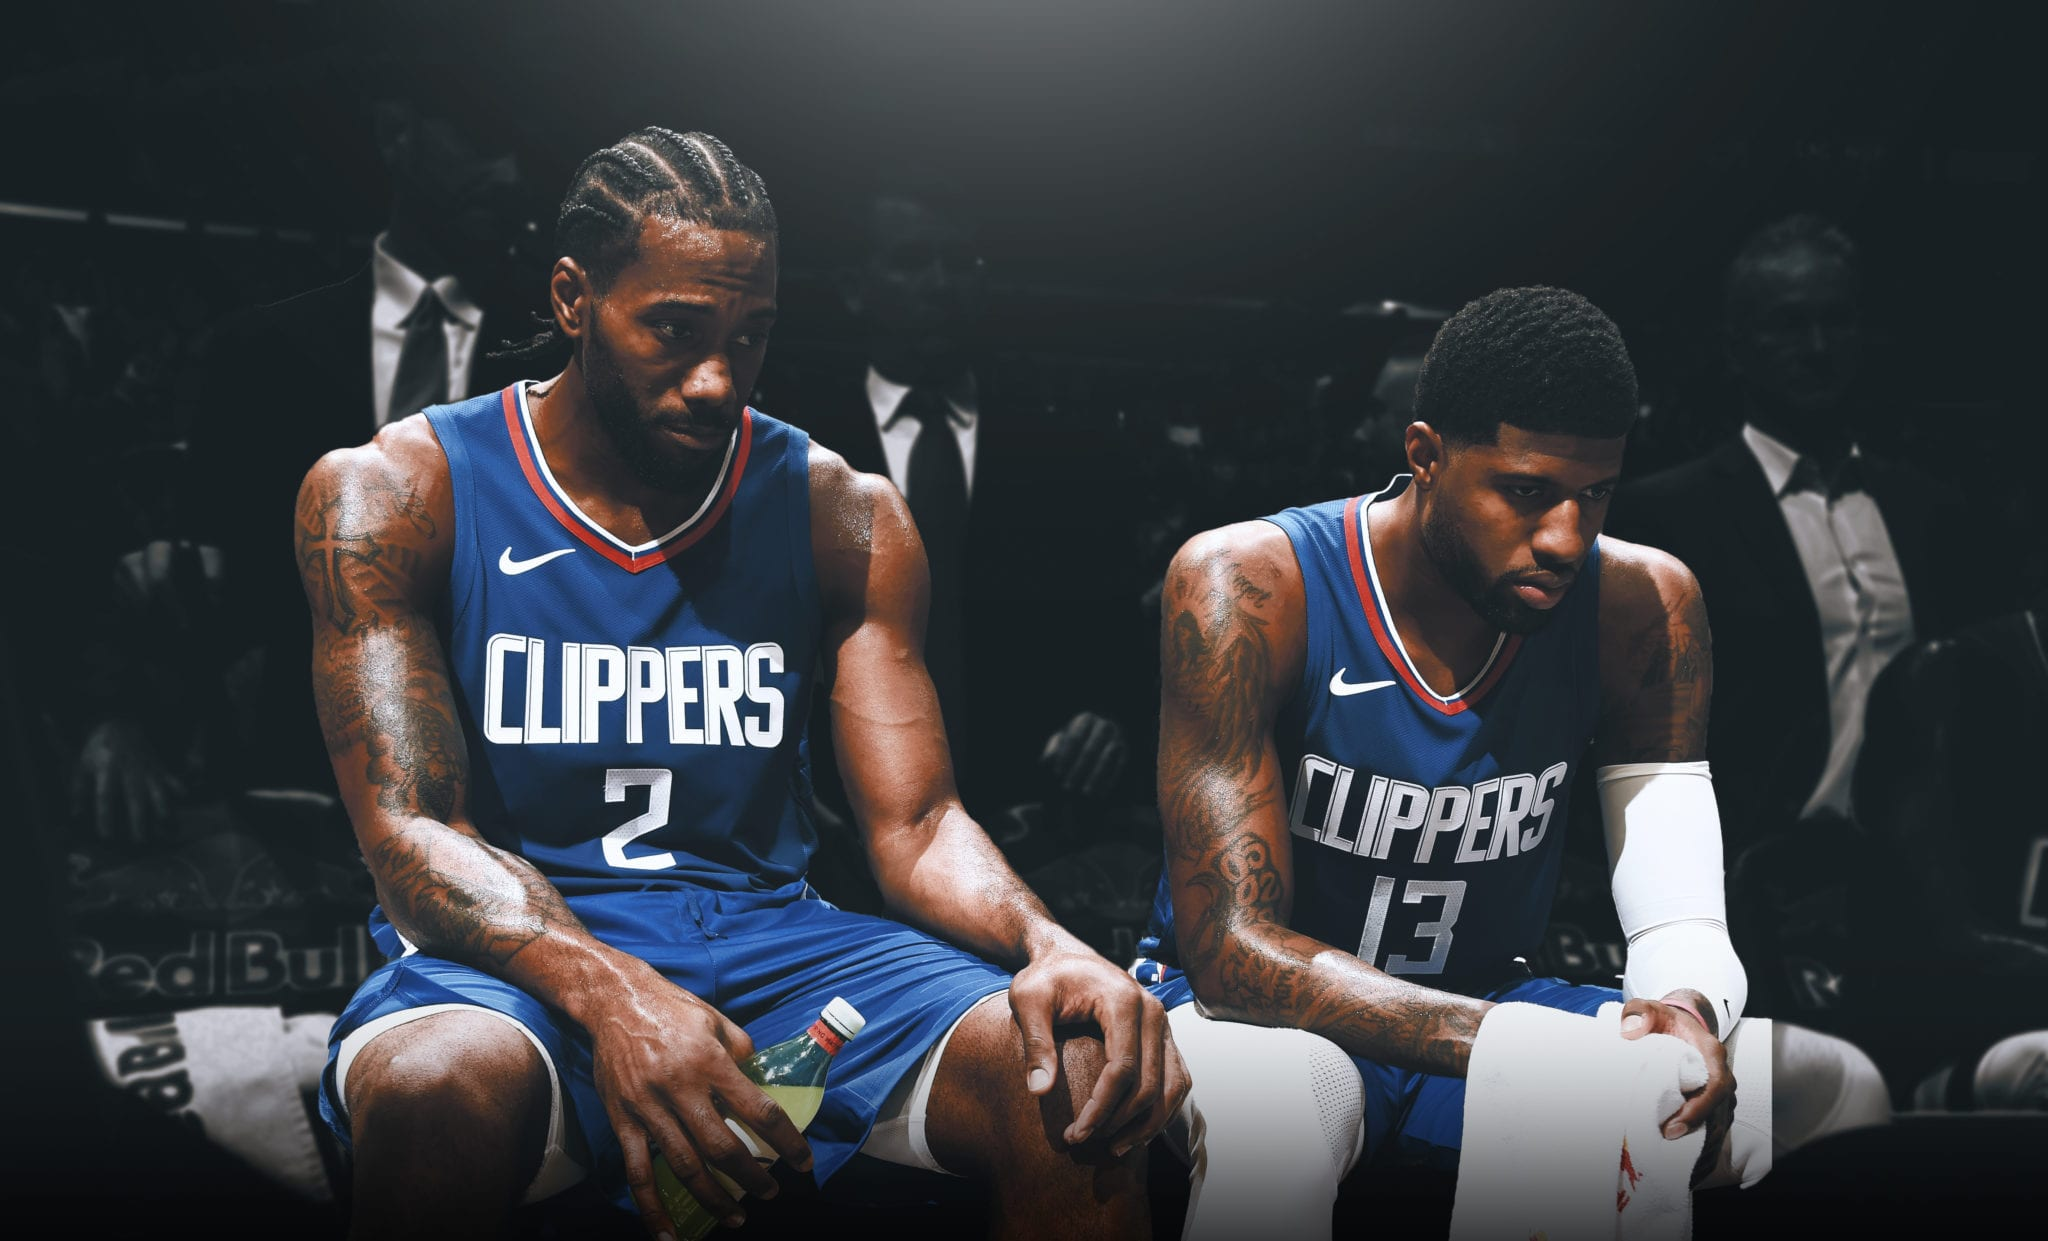 Entire Internet Savagely Roasts Clippers For Going Down 0-2